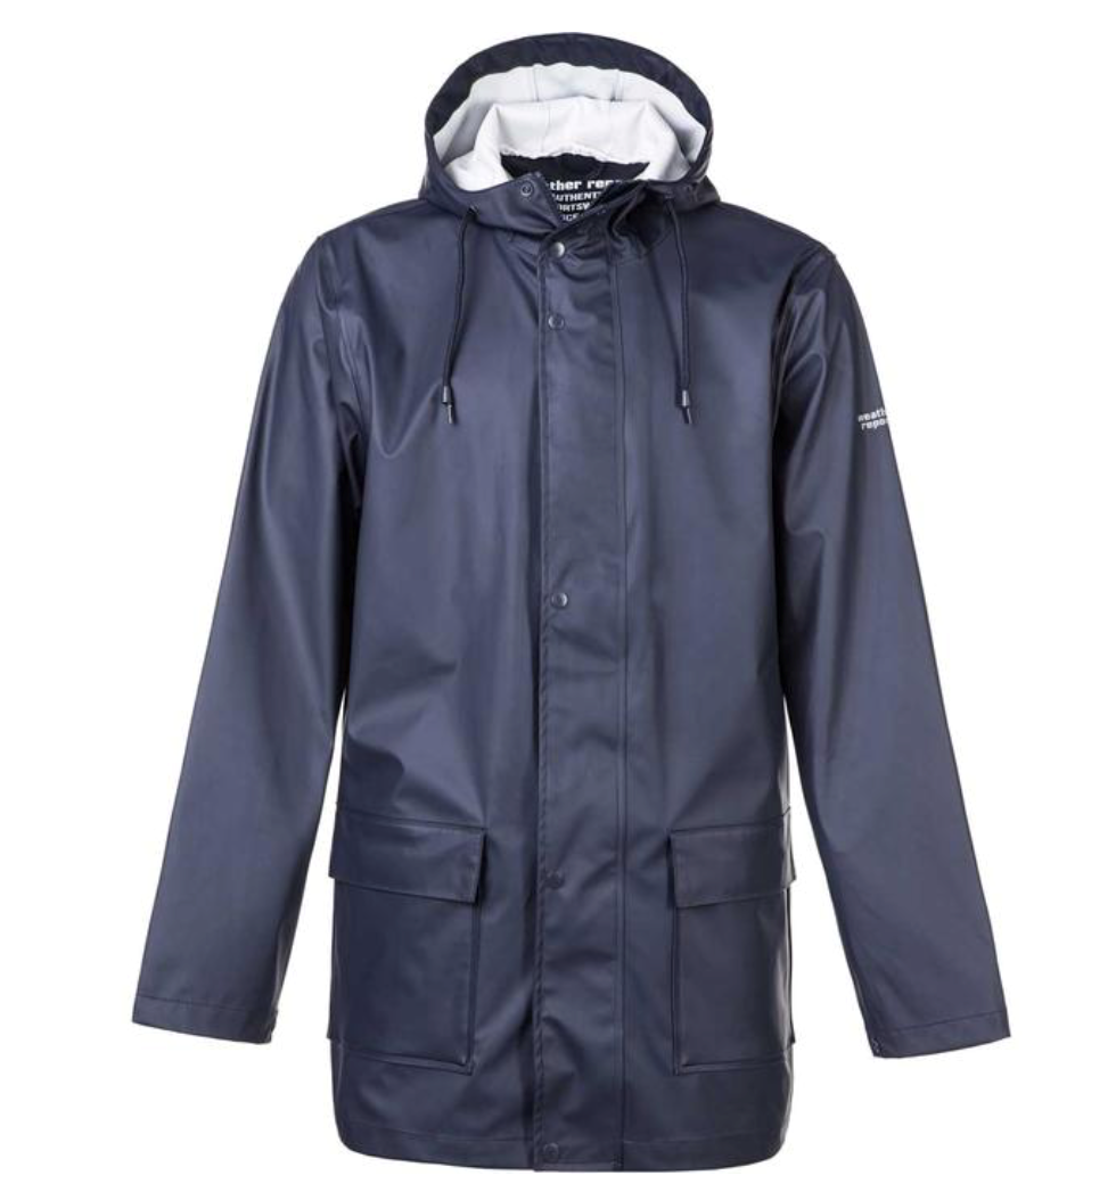 Bilde av Torstein M Rain Jacket Midnight Navy 2057 Midnight Navy